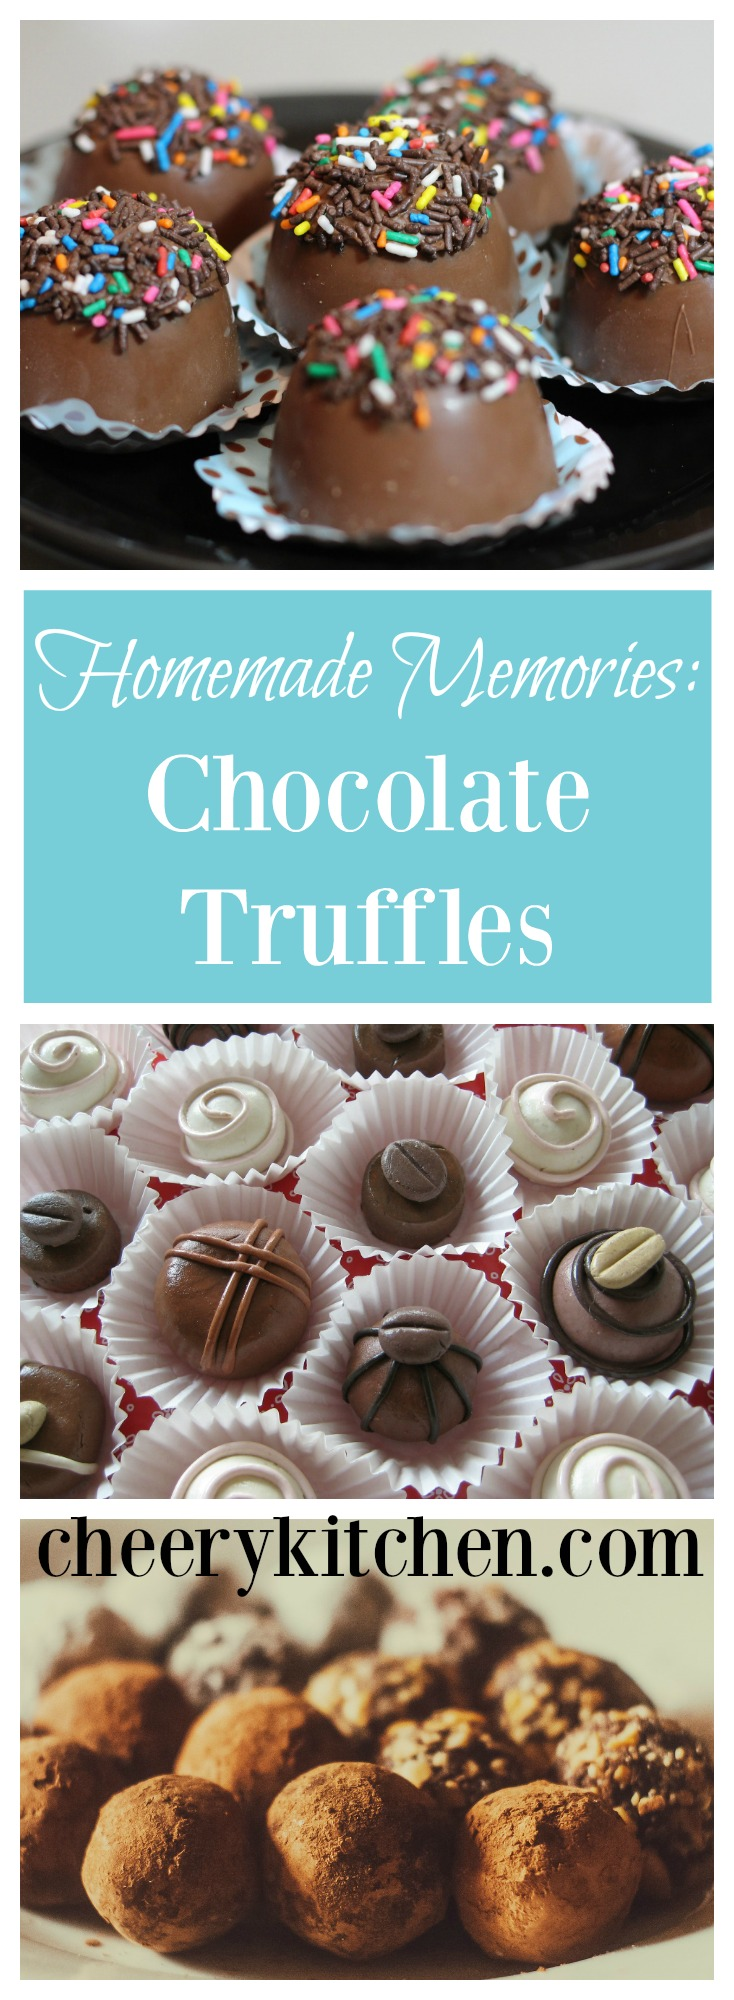 Honor your mother by making these sinfully delicious chocolate truffles. Perfect to customize to your preference with simple ingredients!